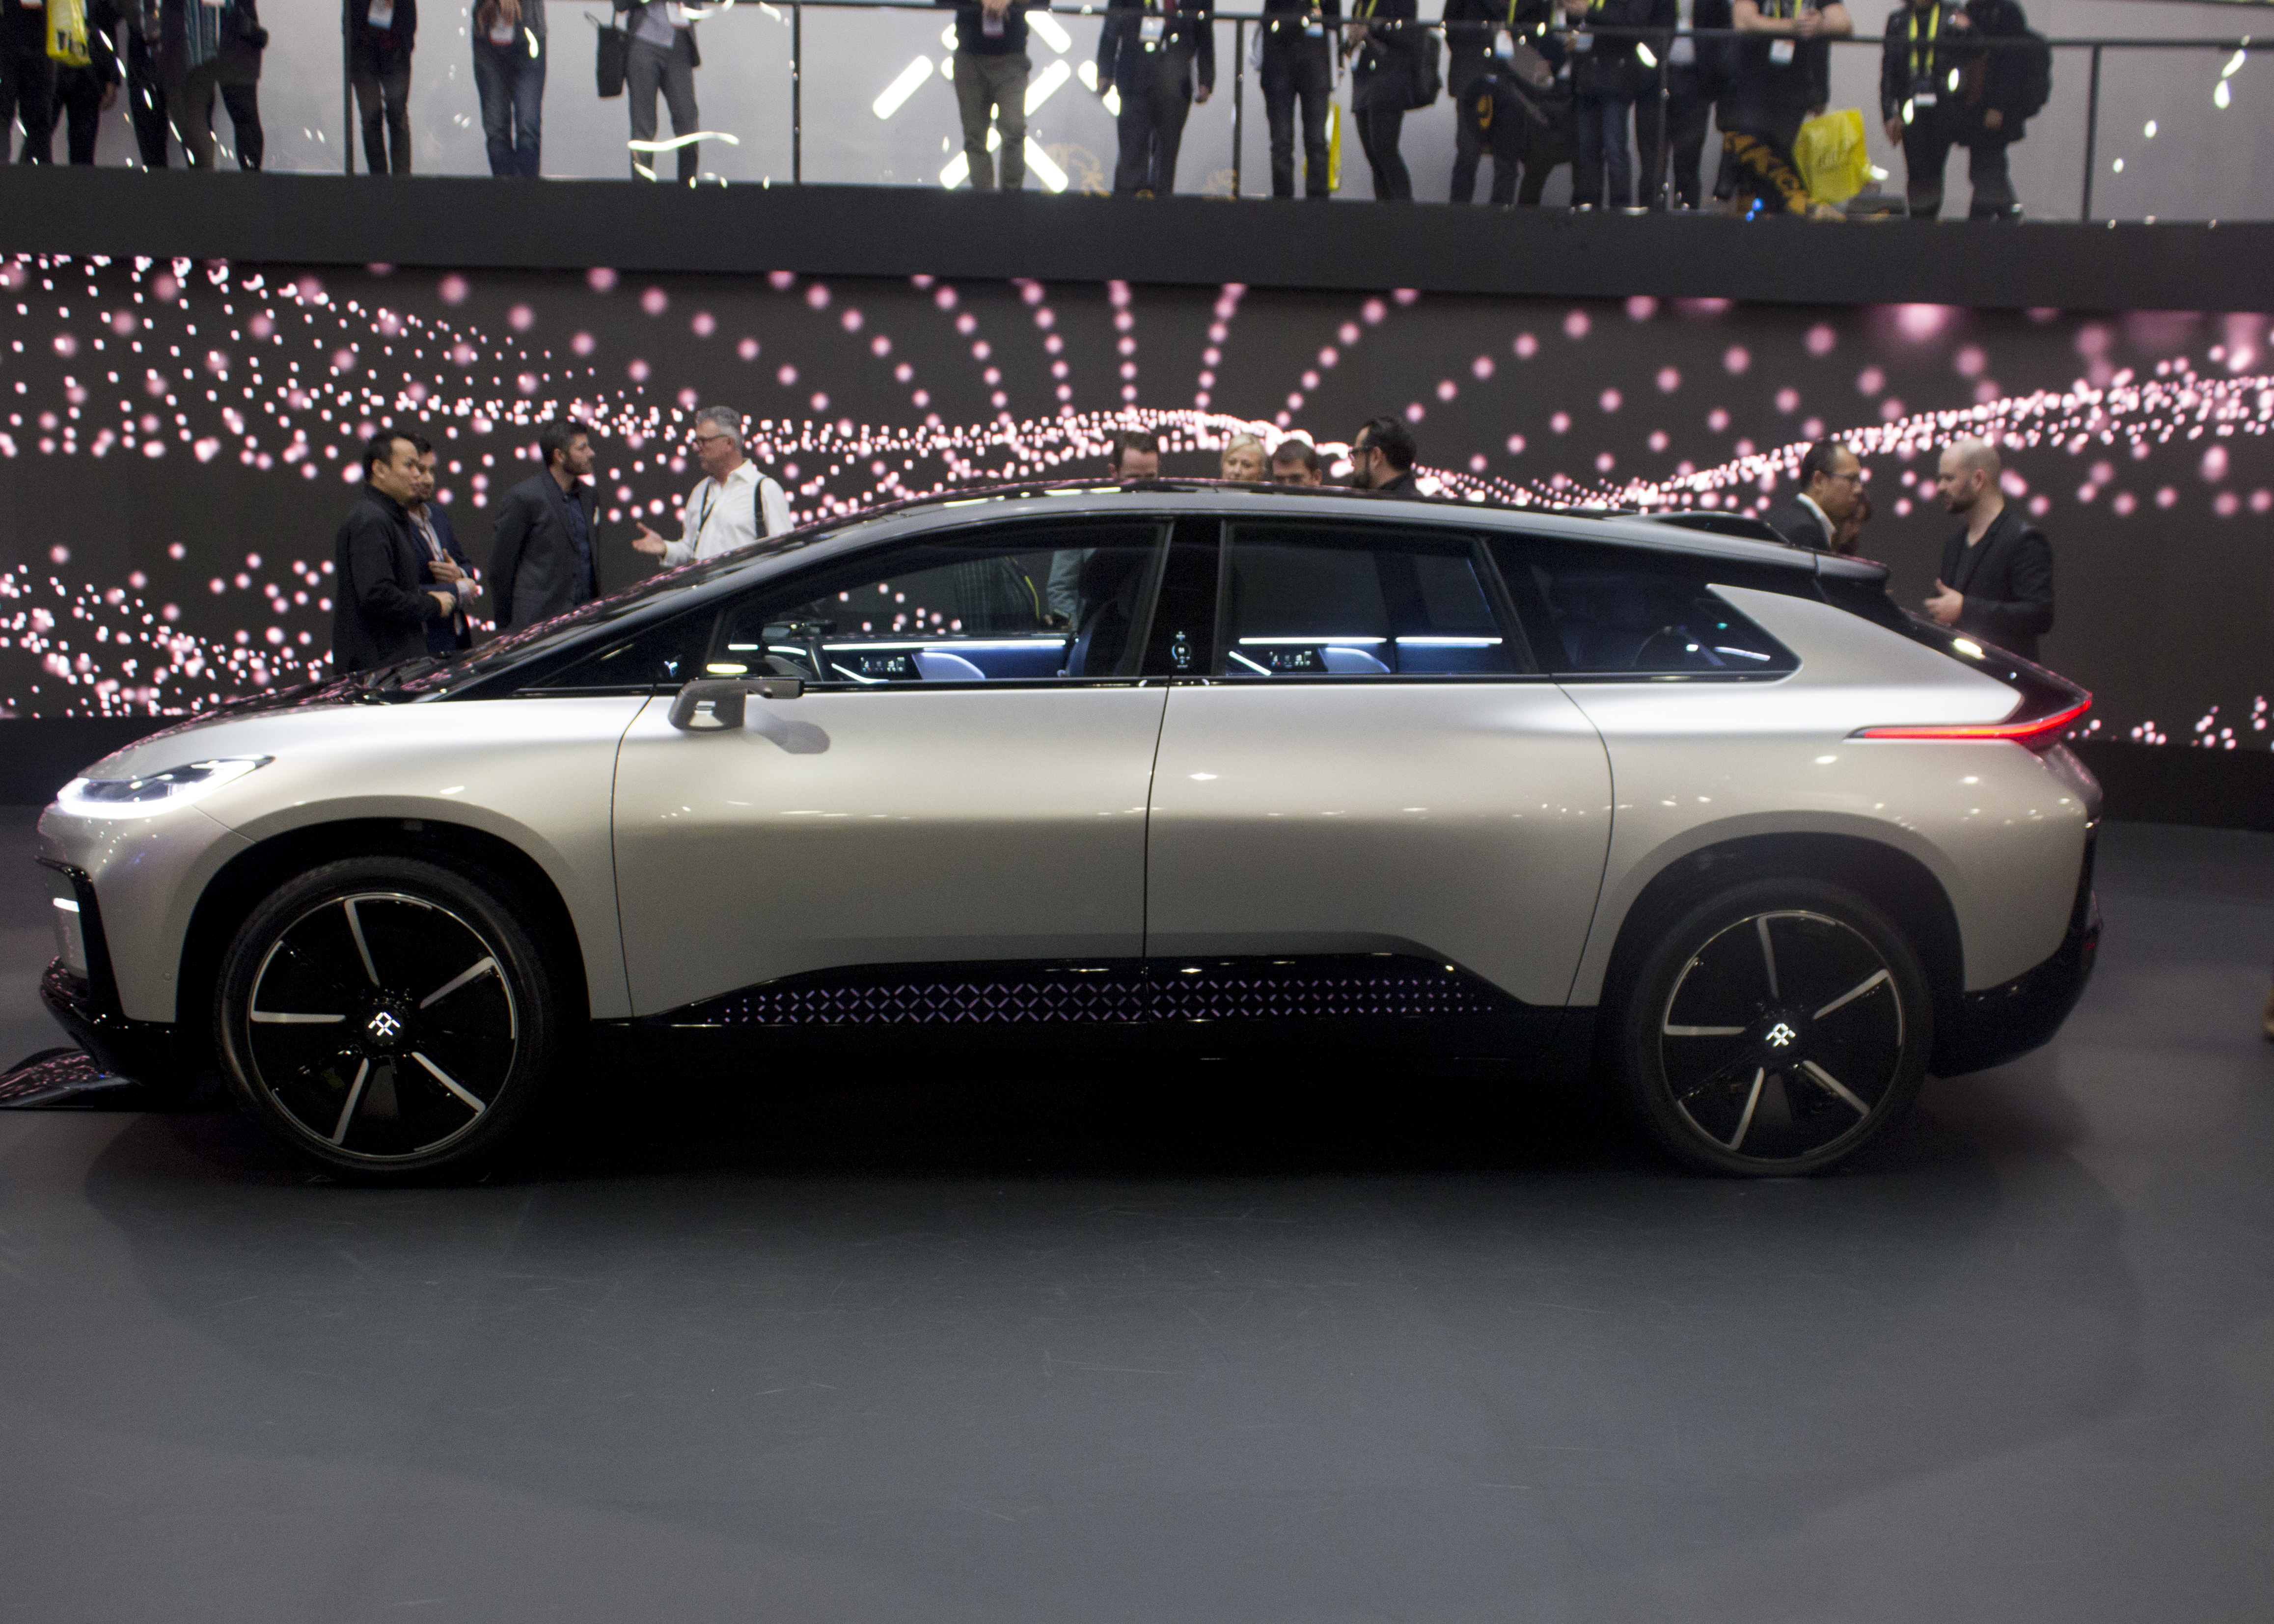 Faraday Future High Price Tag Pending Questions